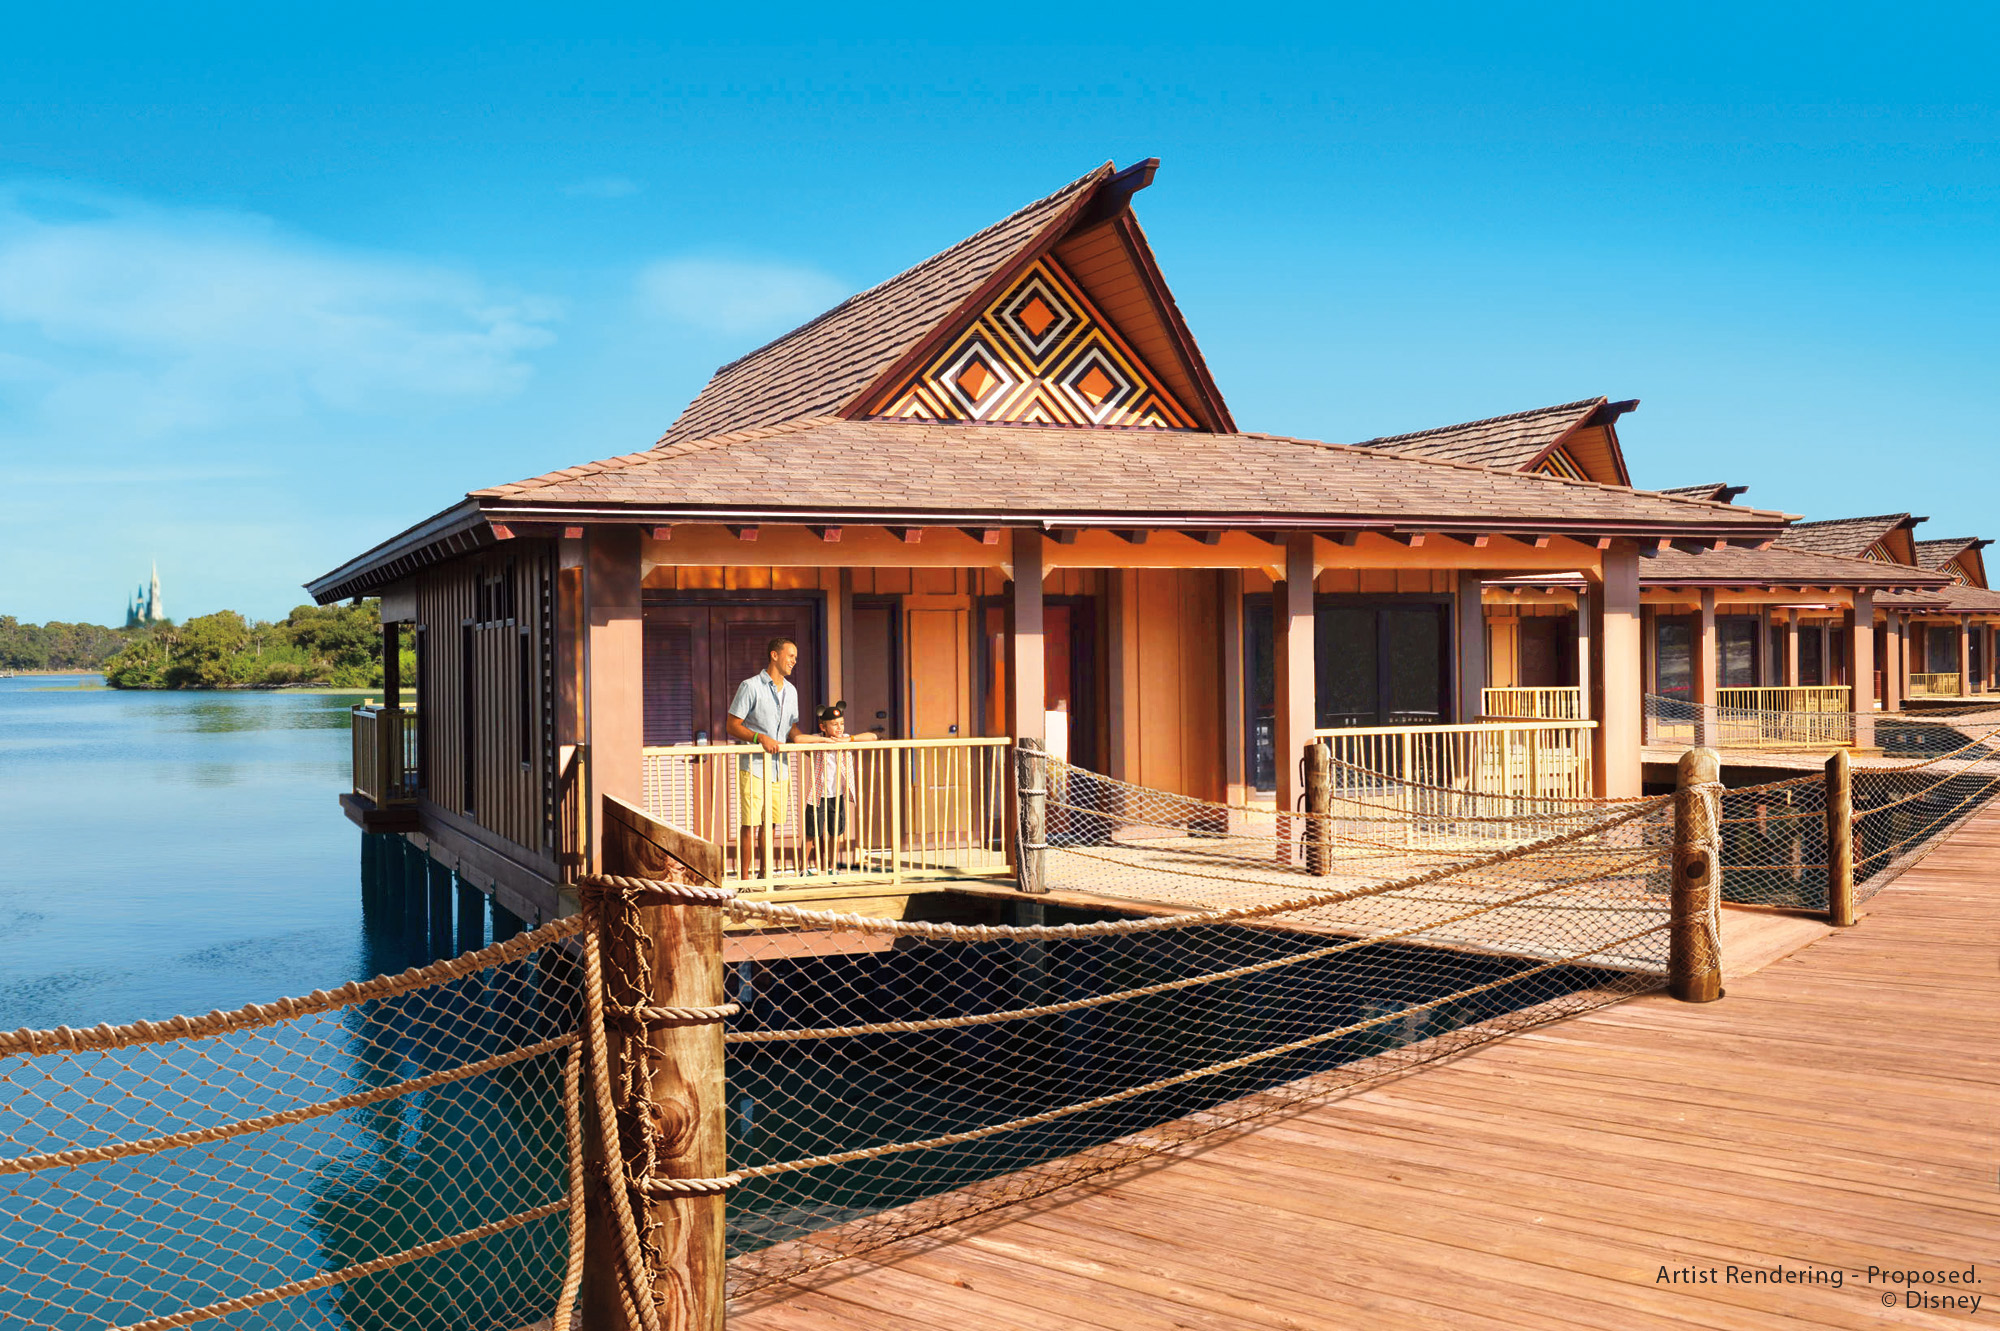 Disney's Polynesian Villas & Bungalows at Disney's Polynesian Village Resort